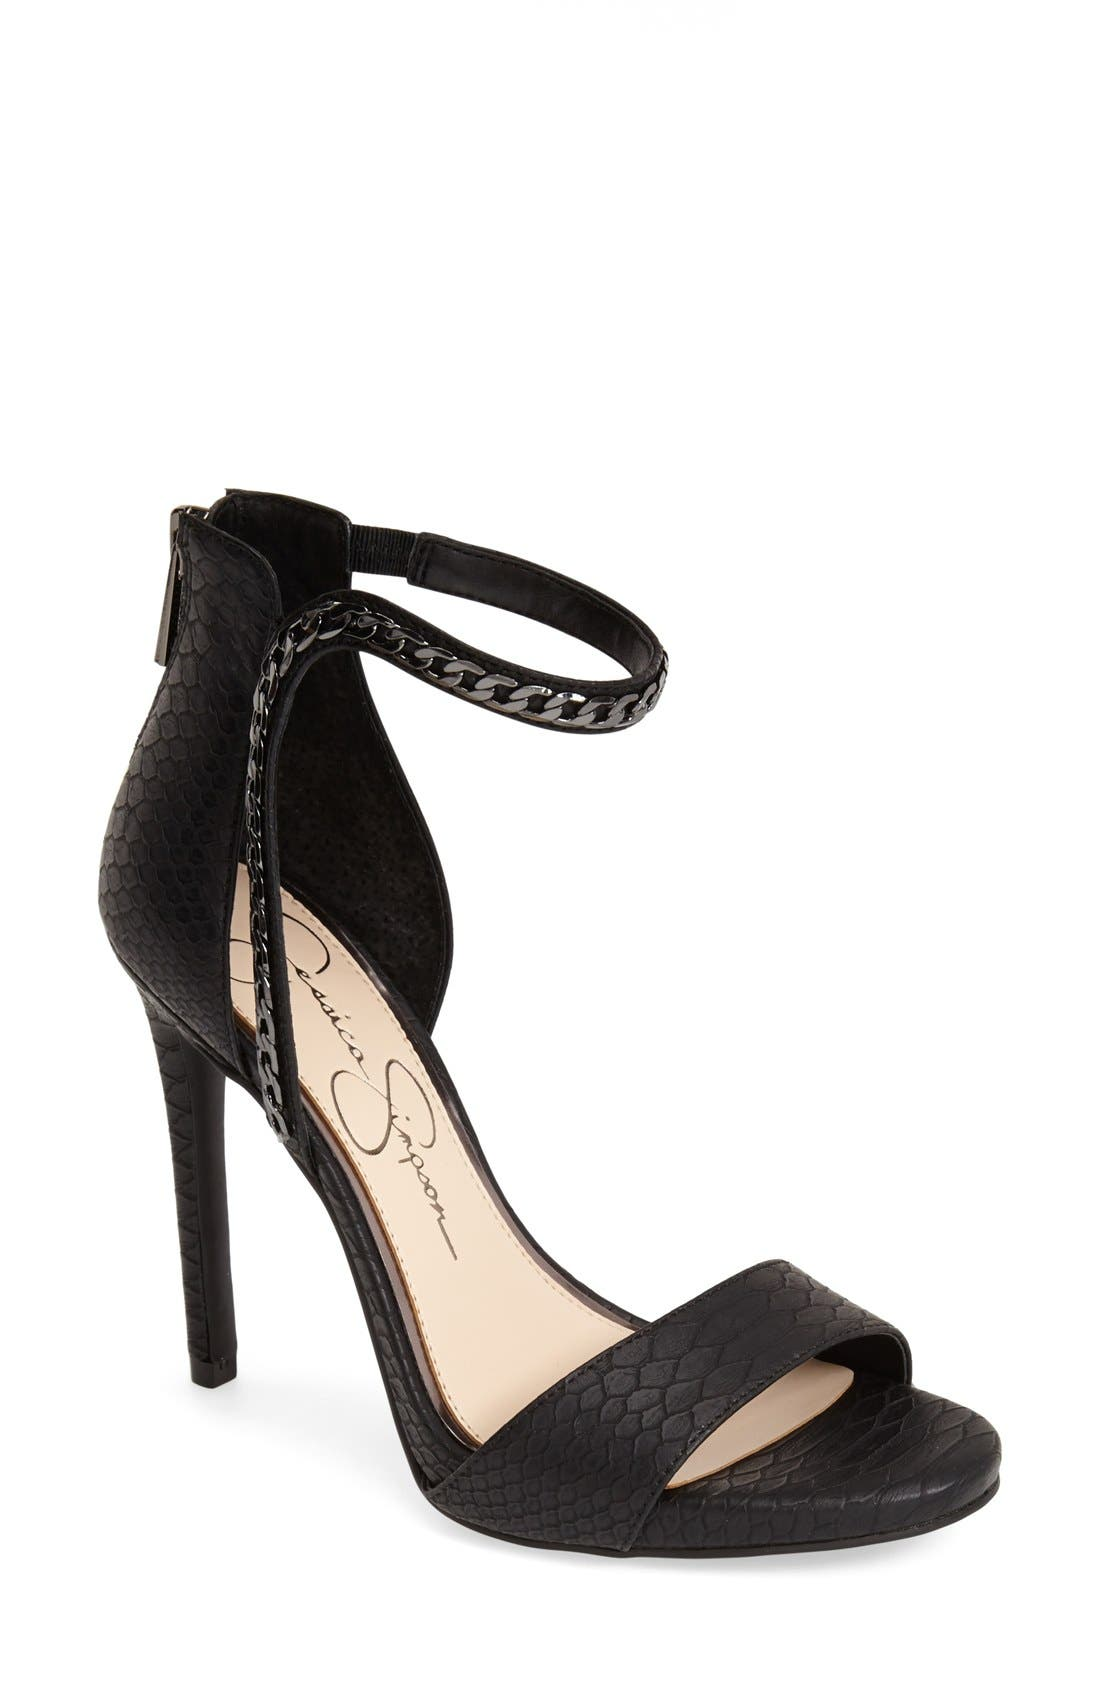 JESSICA SIMPSON,                             'Redith' Chain Embellished Sandal,                             Main thumbnail 1, color,                             001